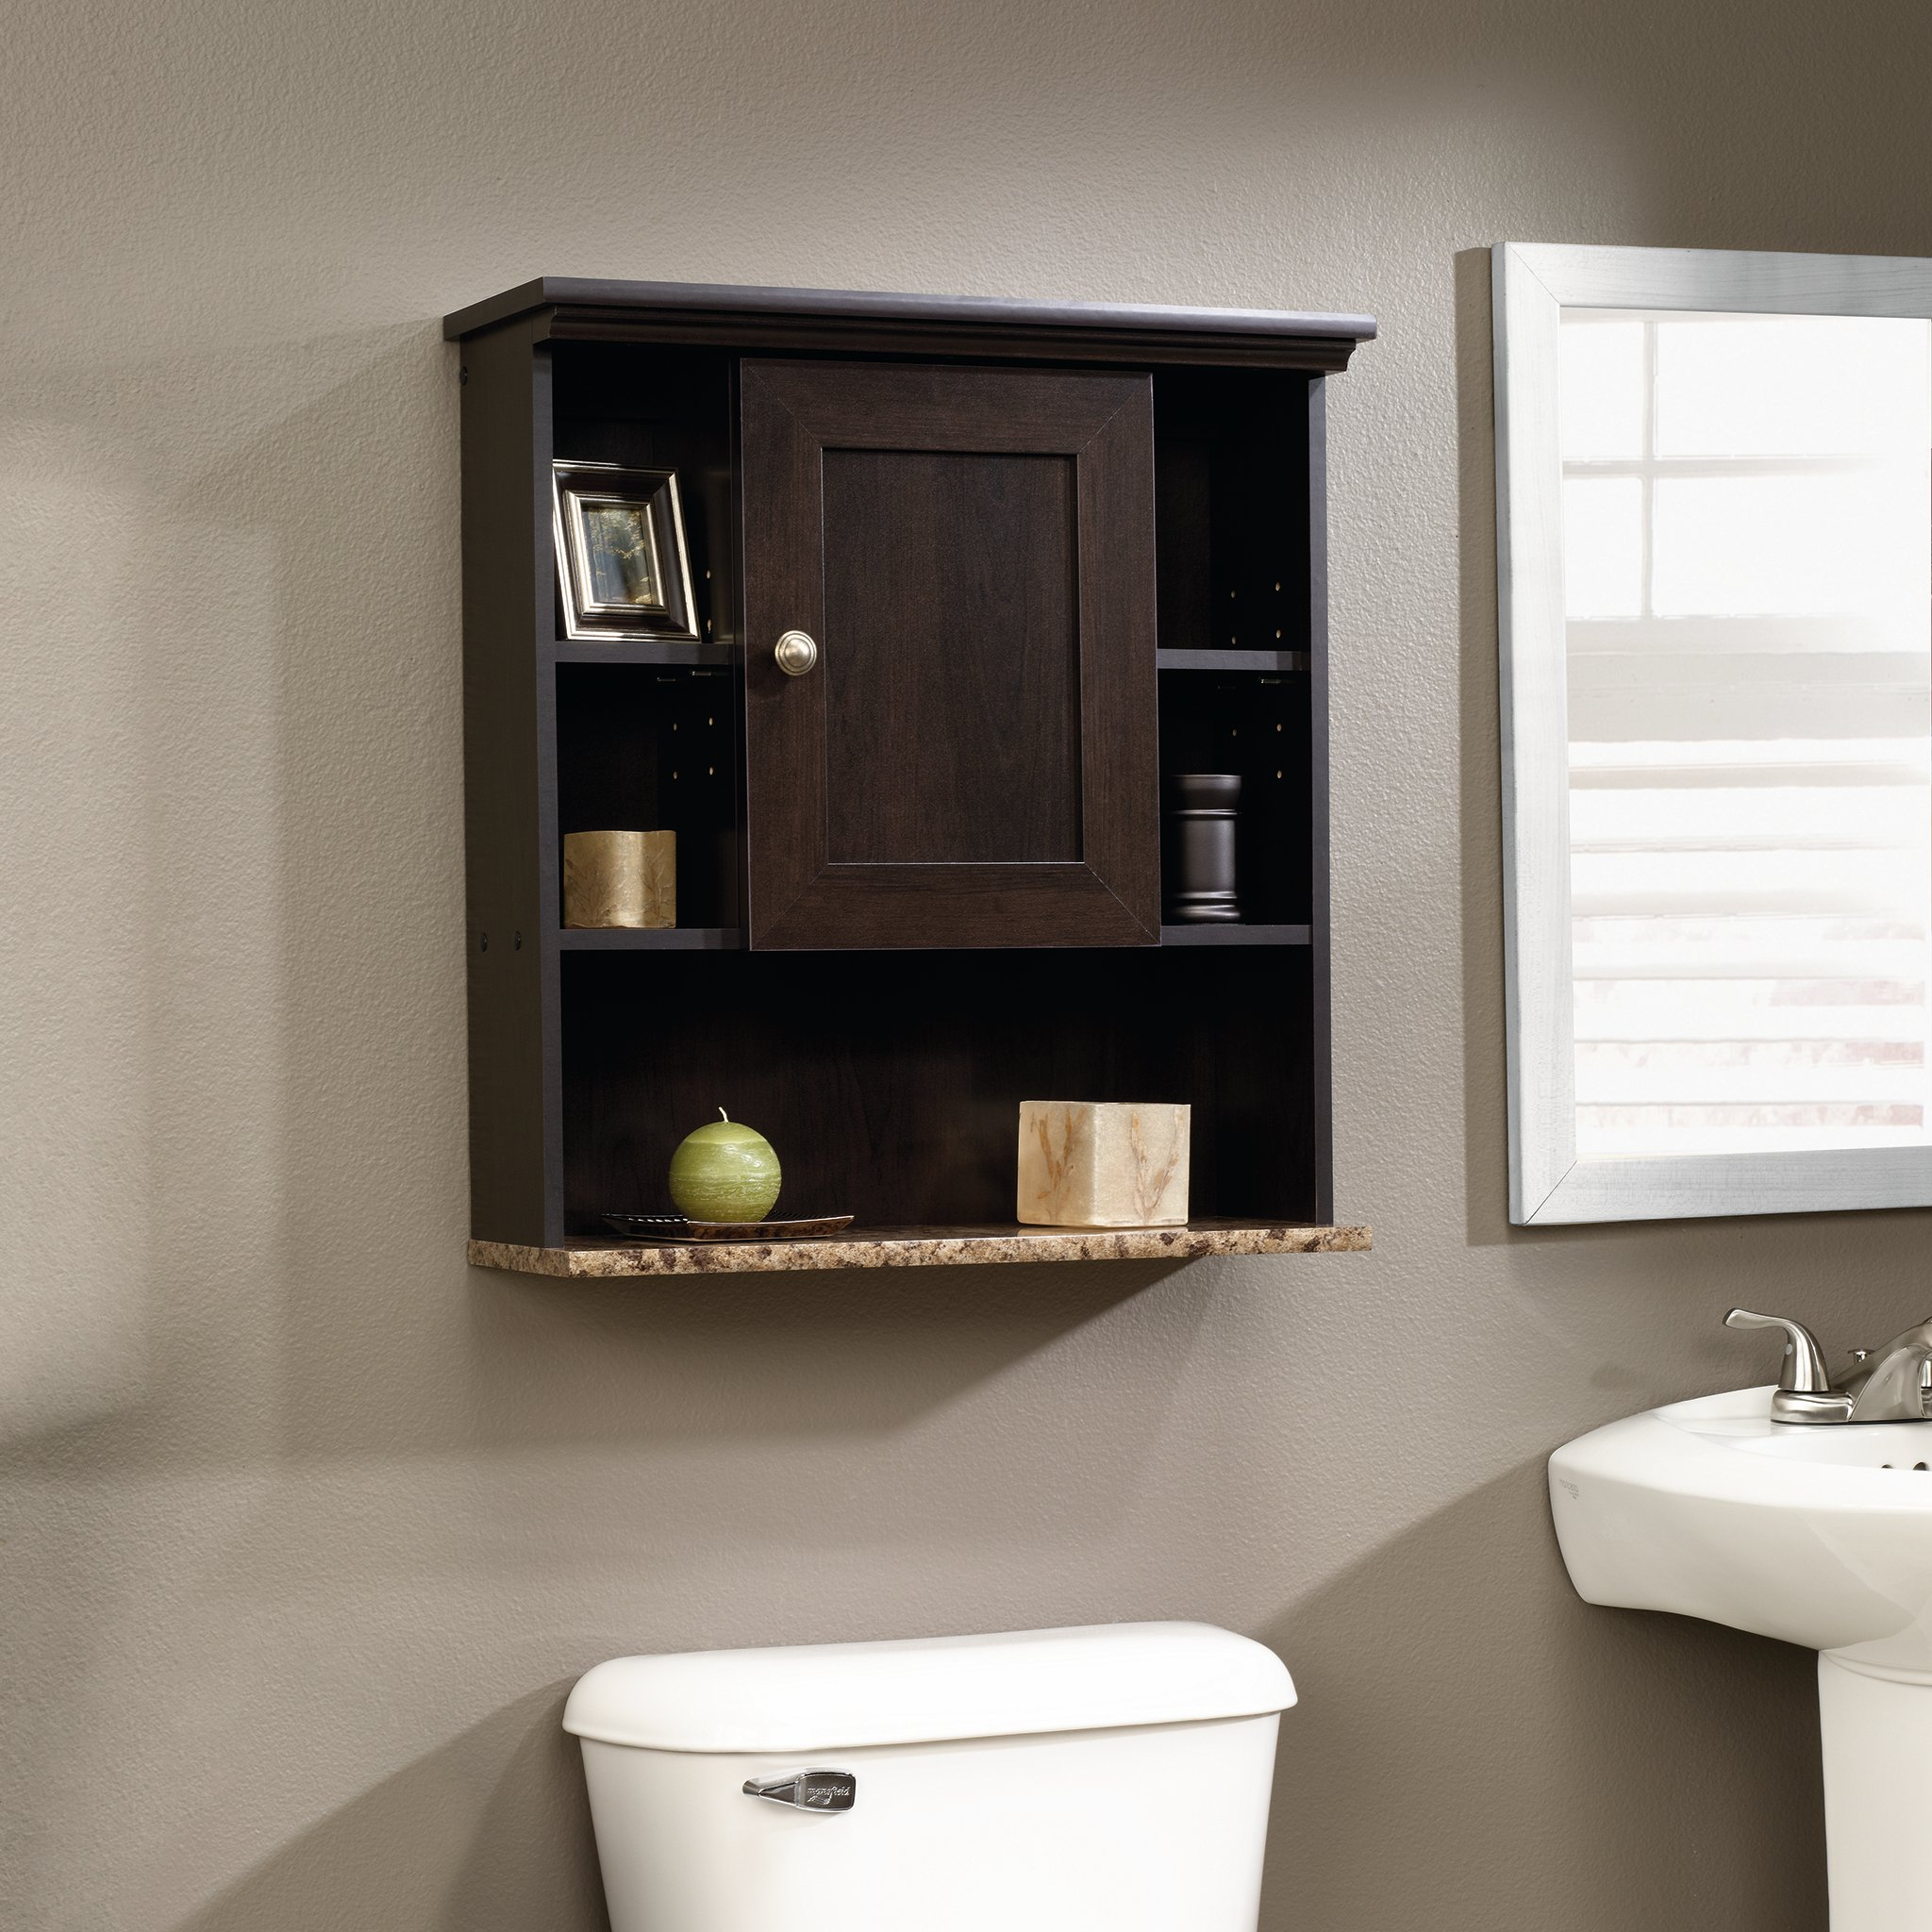 Sauder Wall Cabinet, Cinnamon Cherry Finish by Sauder (Image #3)